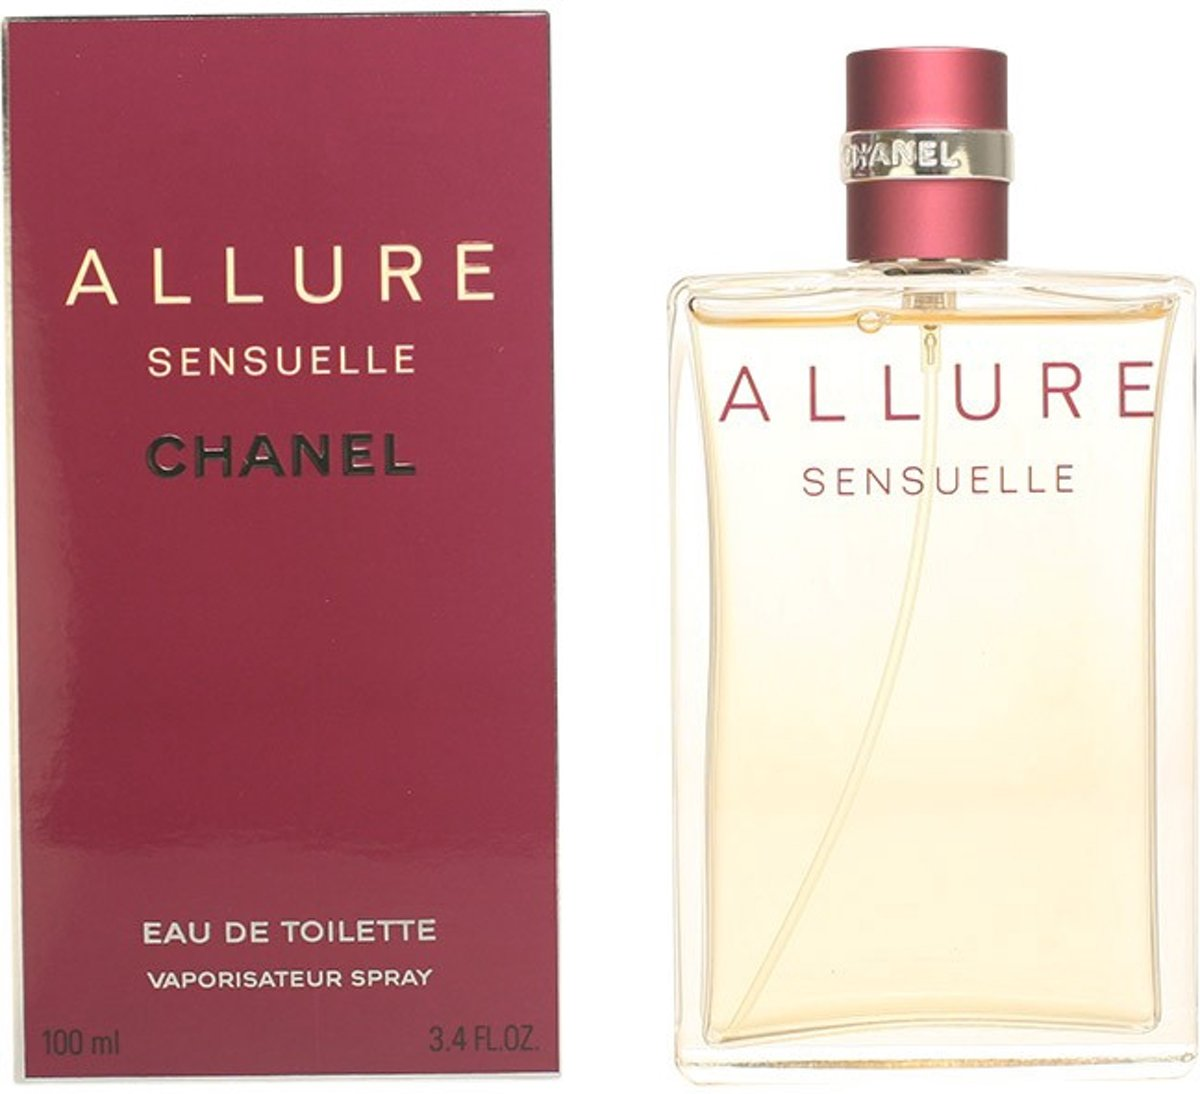 CHANEL ALLURE - 100ML - Eau de toilette